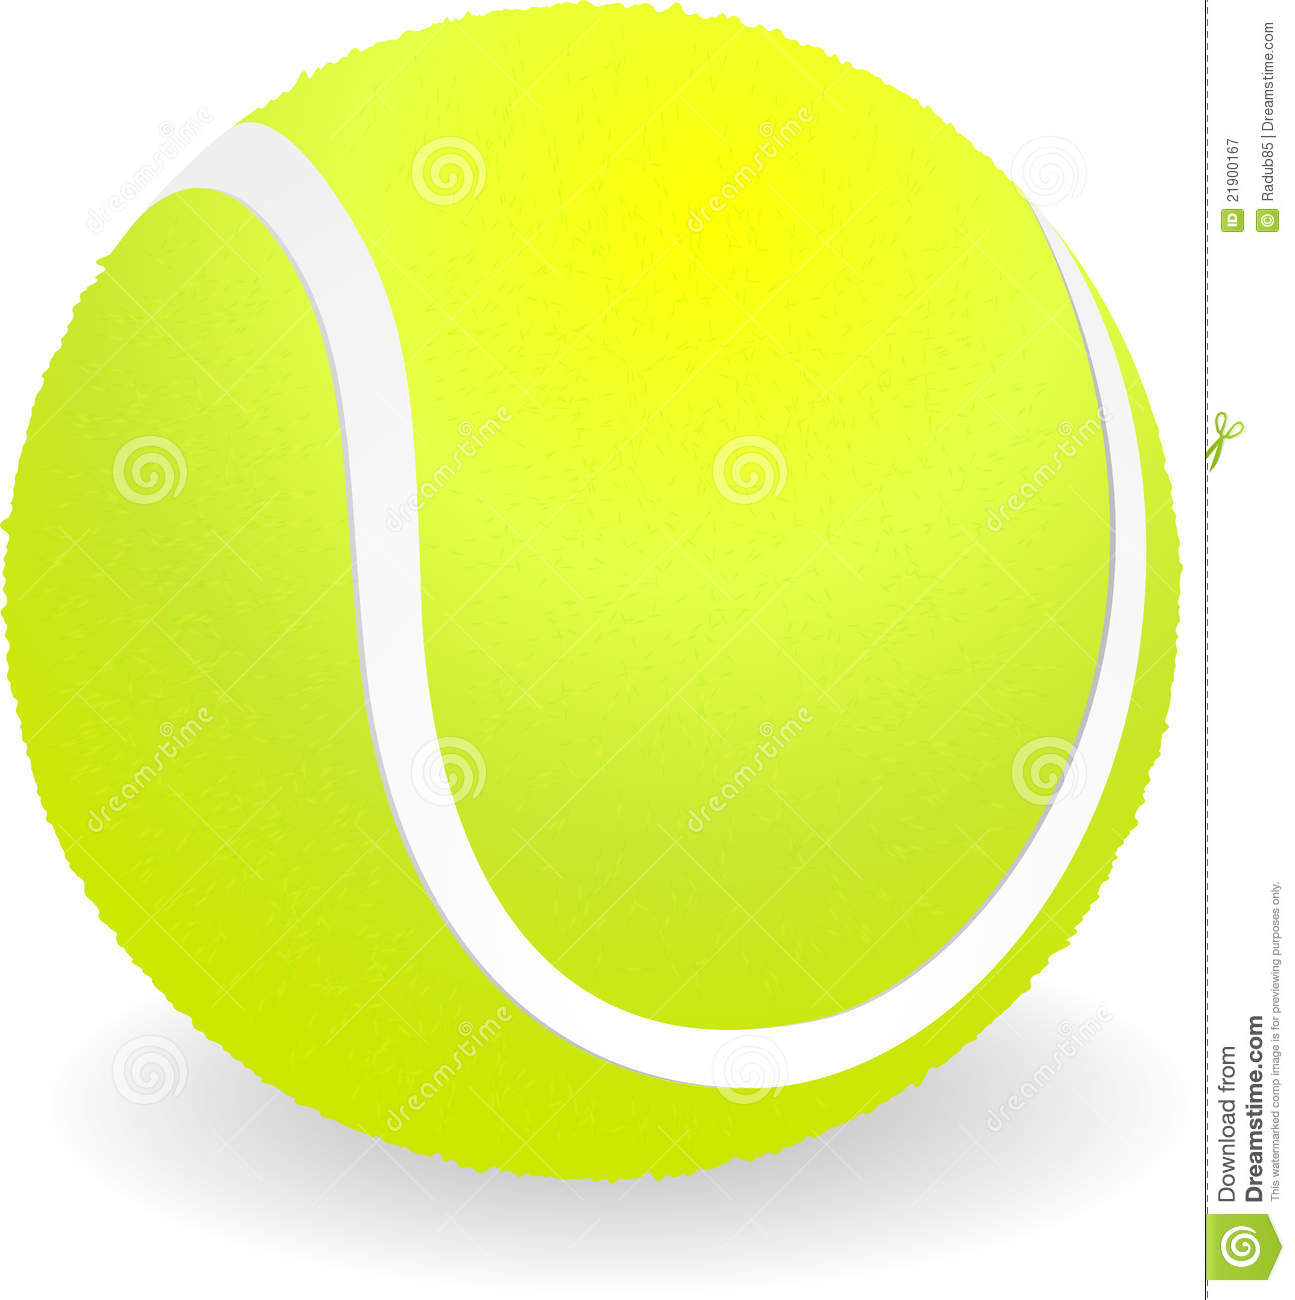 Royalty Free Stock Photography: Tennis Ball. Image: 21900167